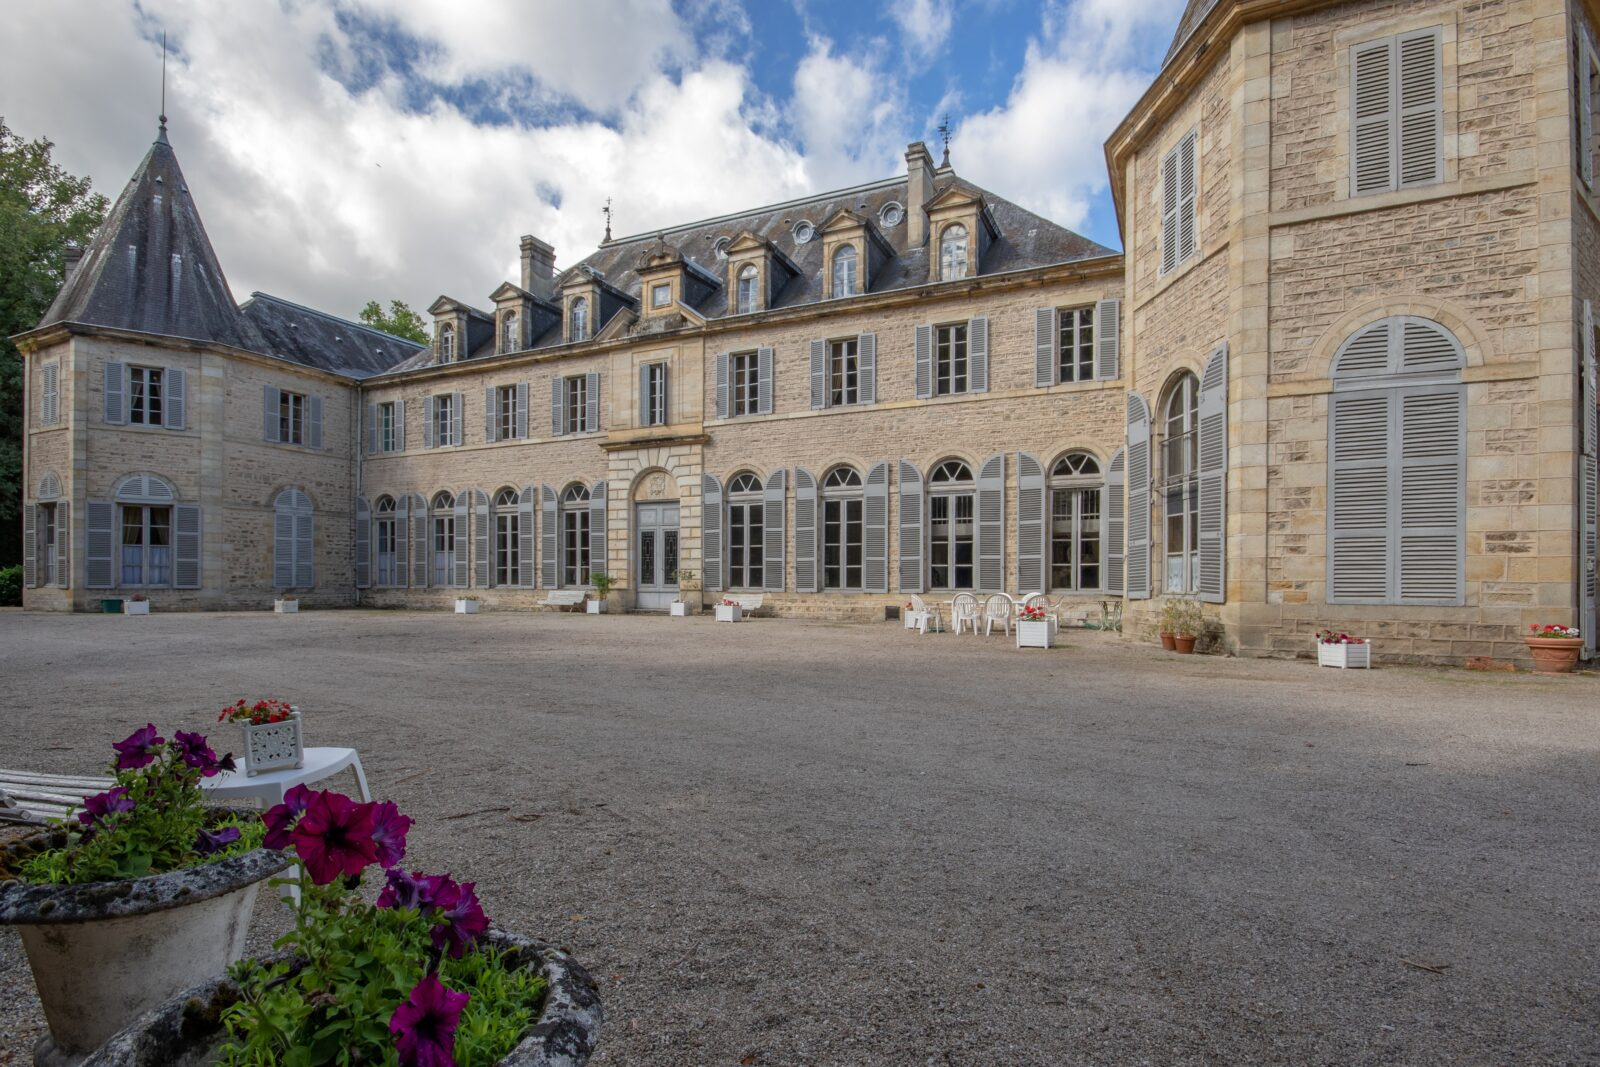 17th Century castle in france with a large history